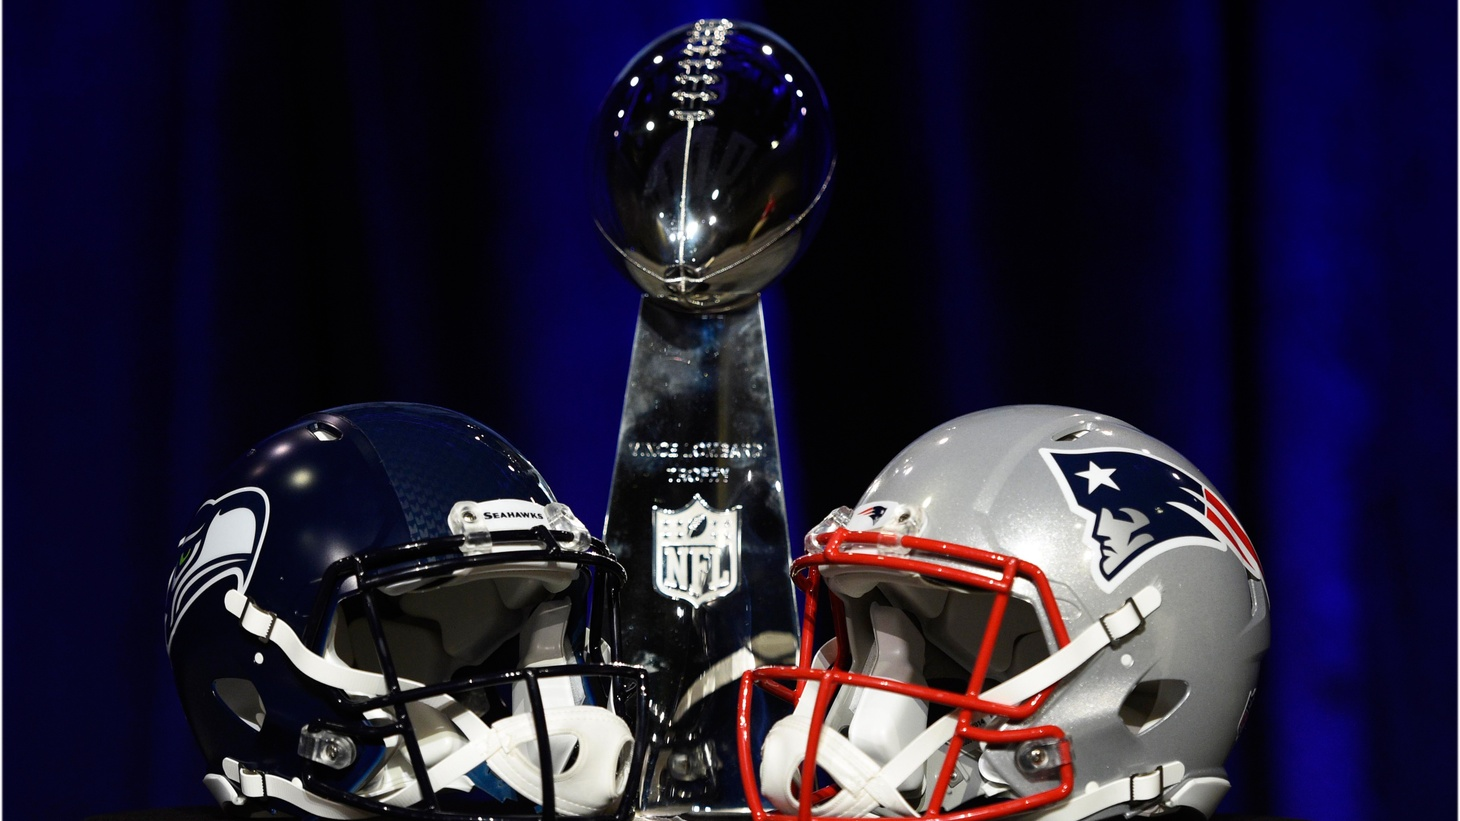 "The Super Bowl is this Sunday. We talk about some of the weird stories bubbling up around it, including so-called ""deflate gate"" and Marshawn Lynch's media blackout. Also, concussions in the NFL are on the decline, but how much safer is the game really getting?"